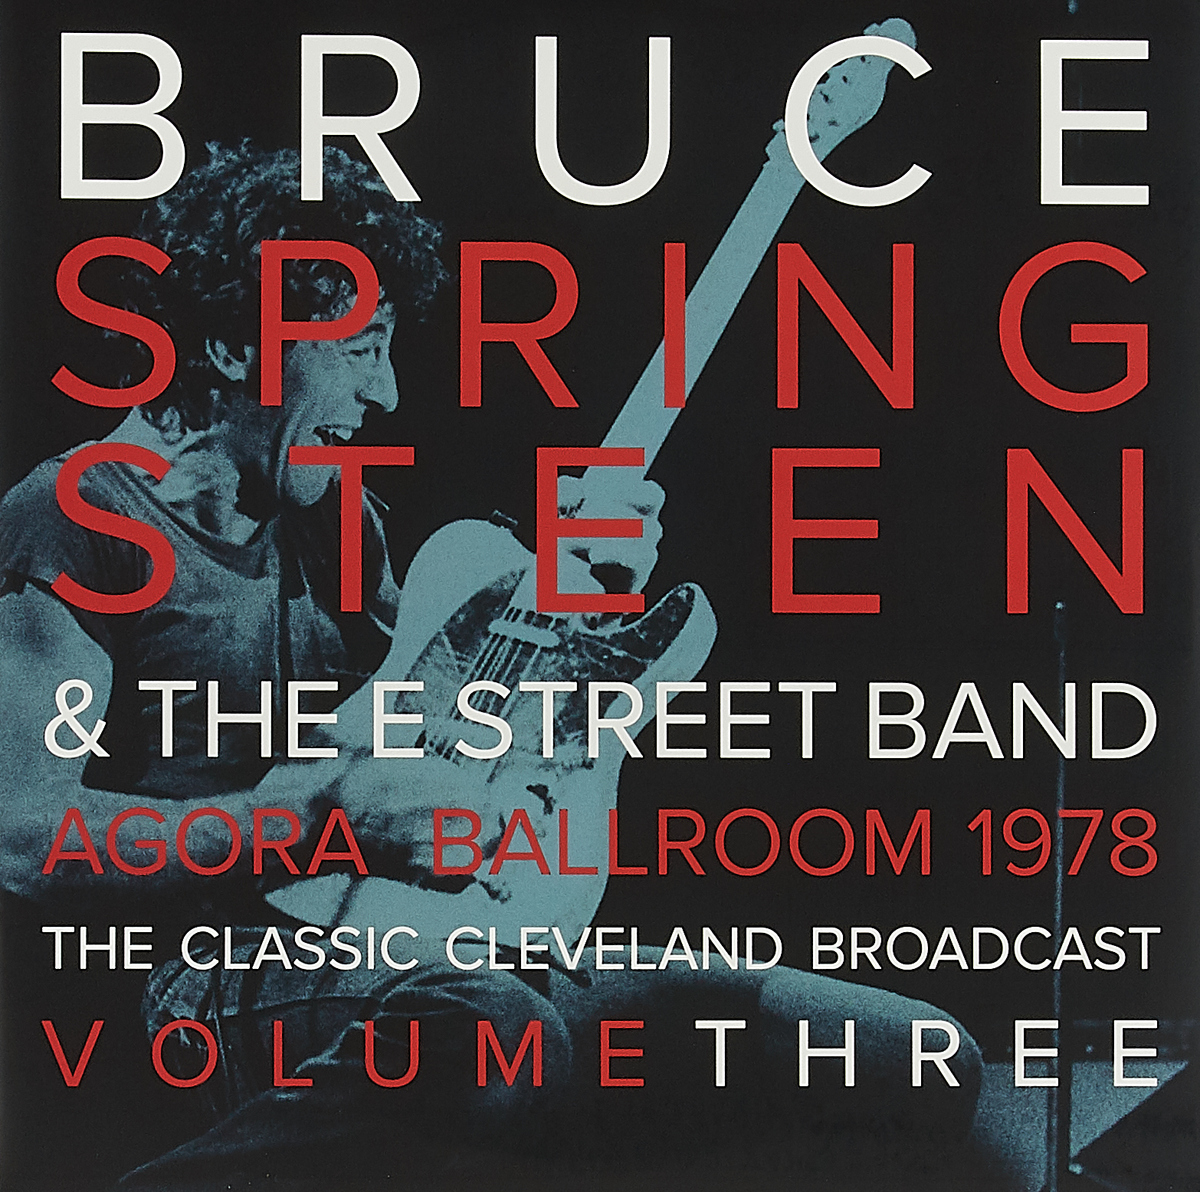 Брюс Спрингстин Bruce Springsteen & The E-Street Band. Agora Ballroom 1978 - The Classic Cleveland Broadcast Volume Three (2 LP) bruce logan e environmental transport processes